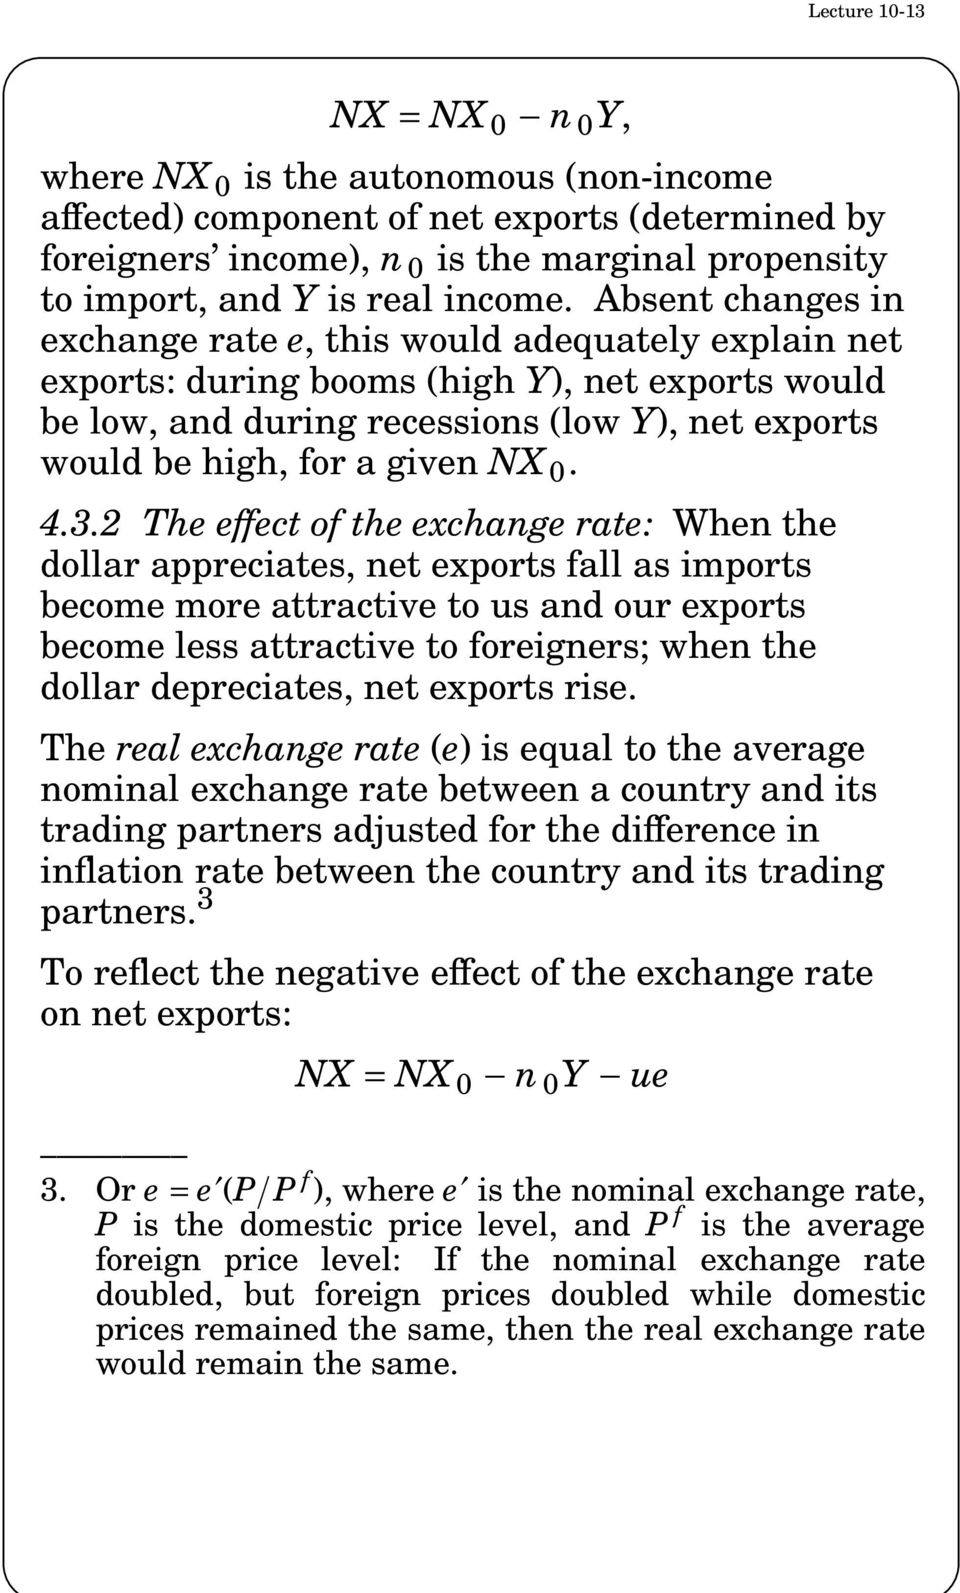 Absent changes in exchange rate e, this would adequately explain net exports: during booms (high Y), net exports would be low, and during recessions (low Y), net exports would be high, for a given NX